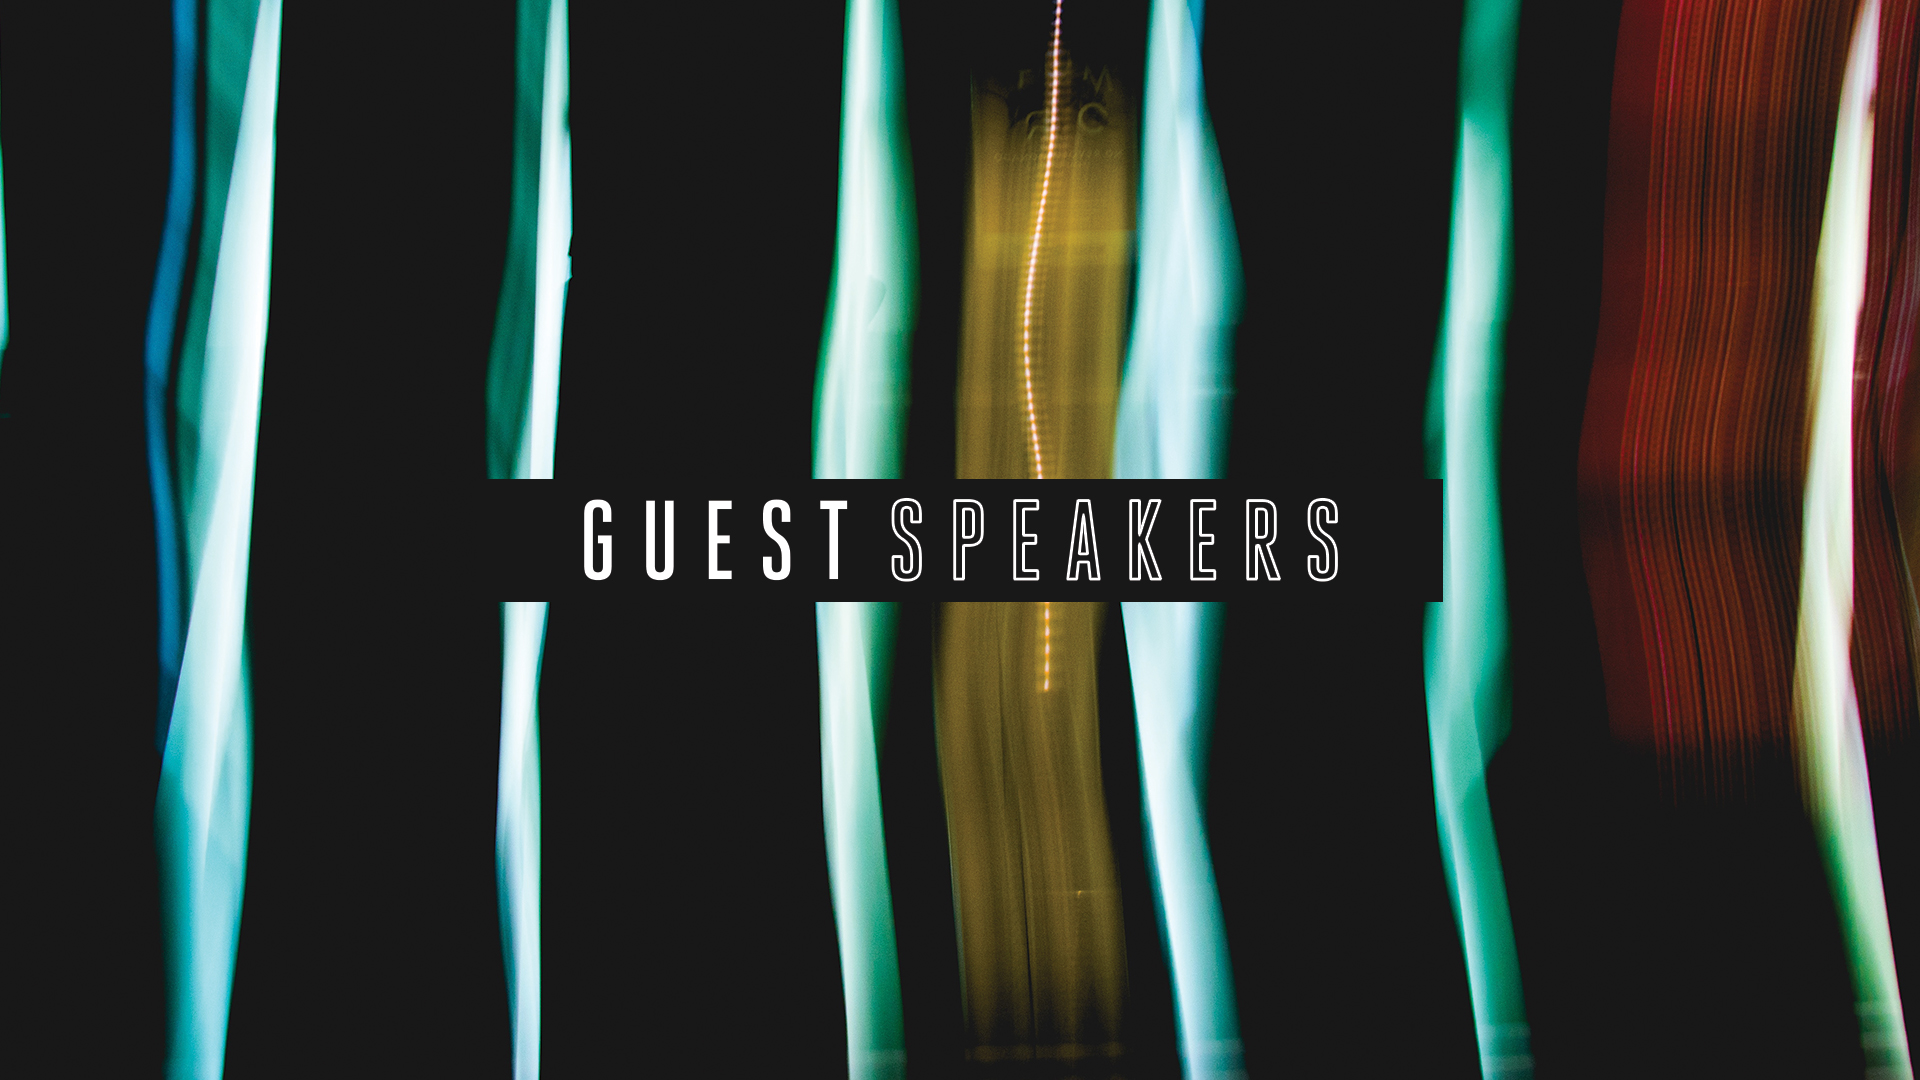 Guest-Speakers-Graphic.jpg